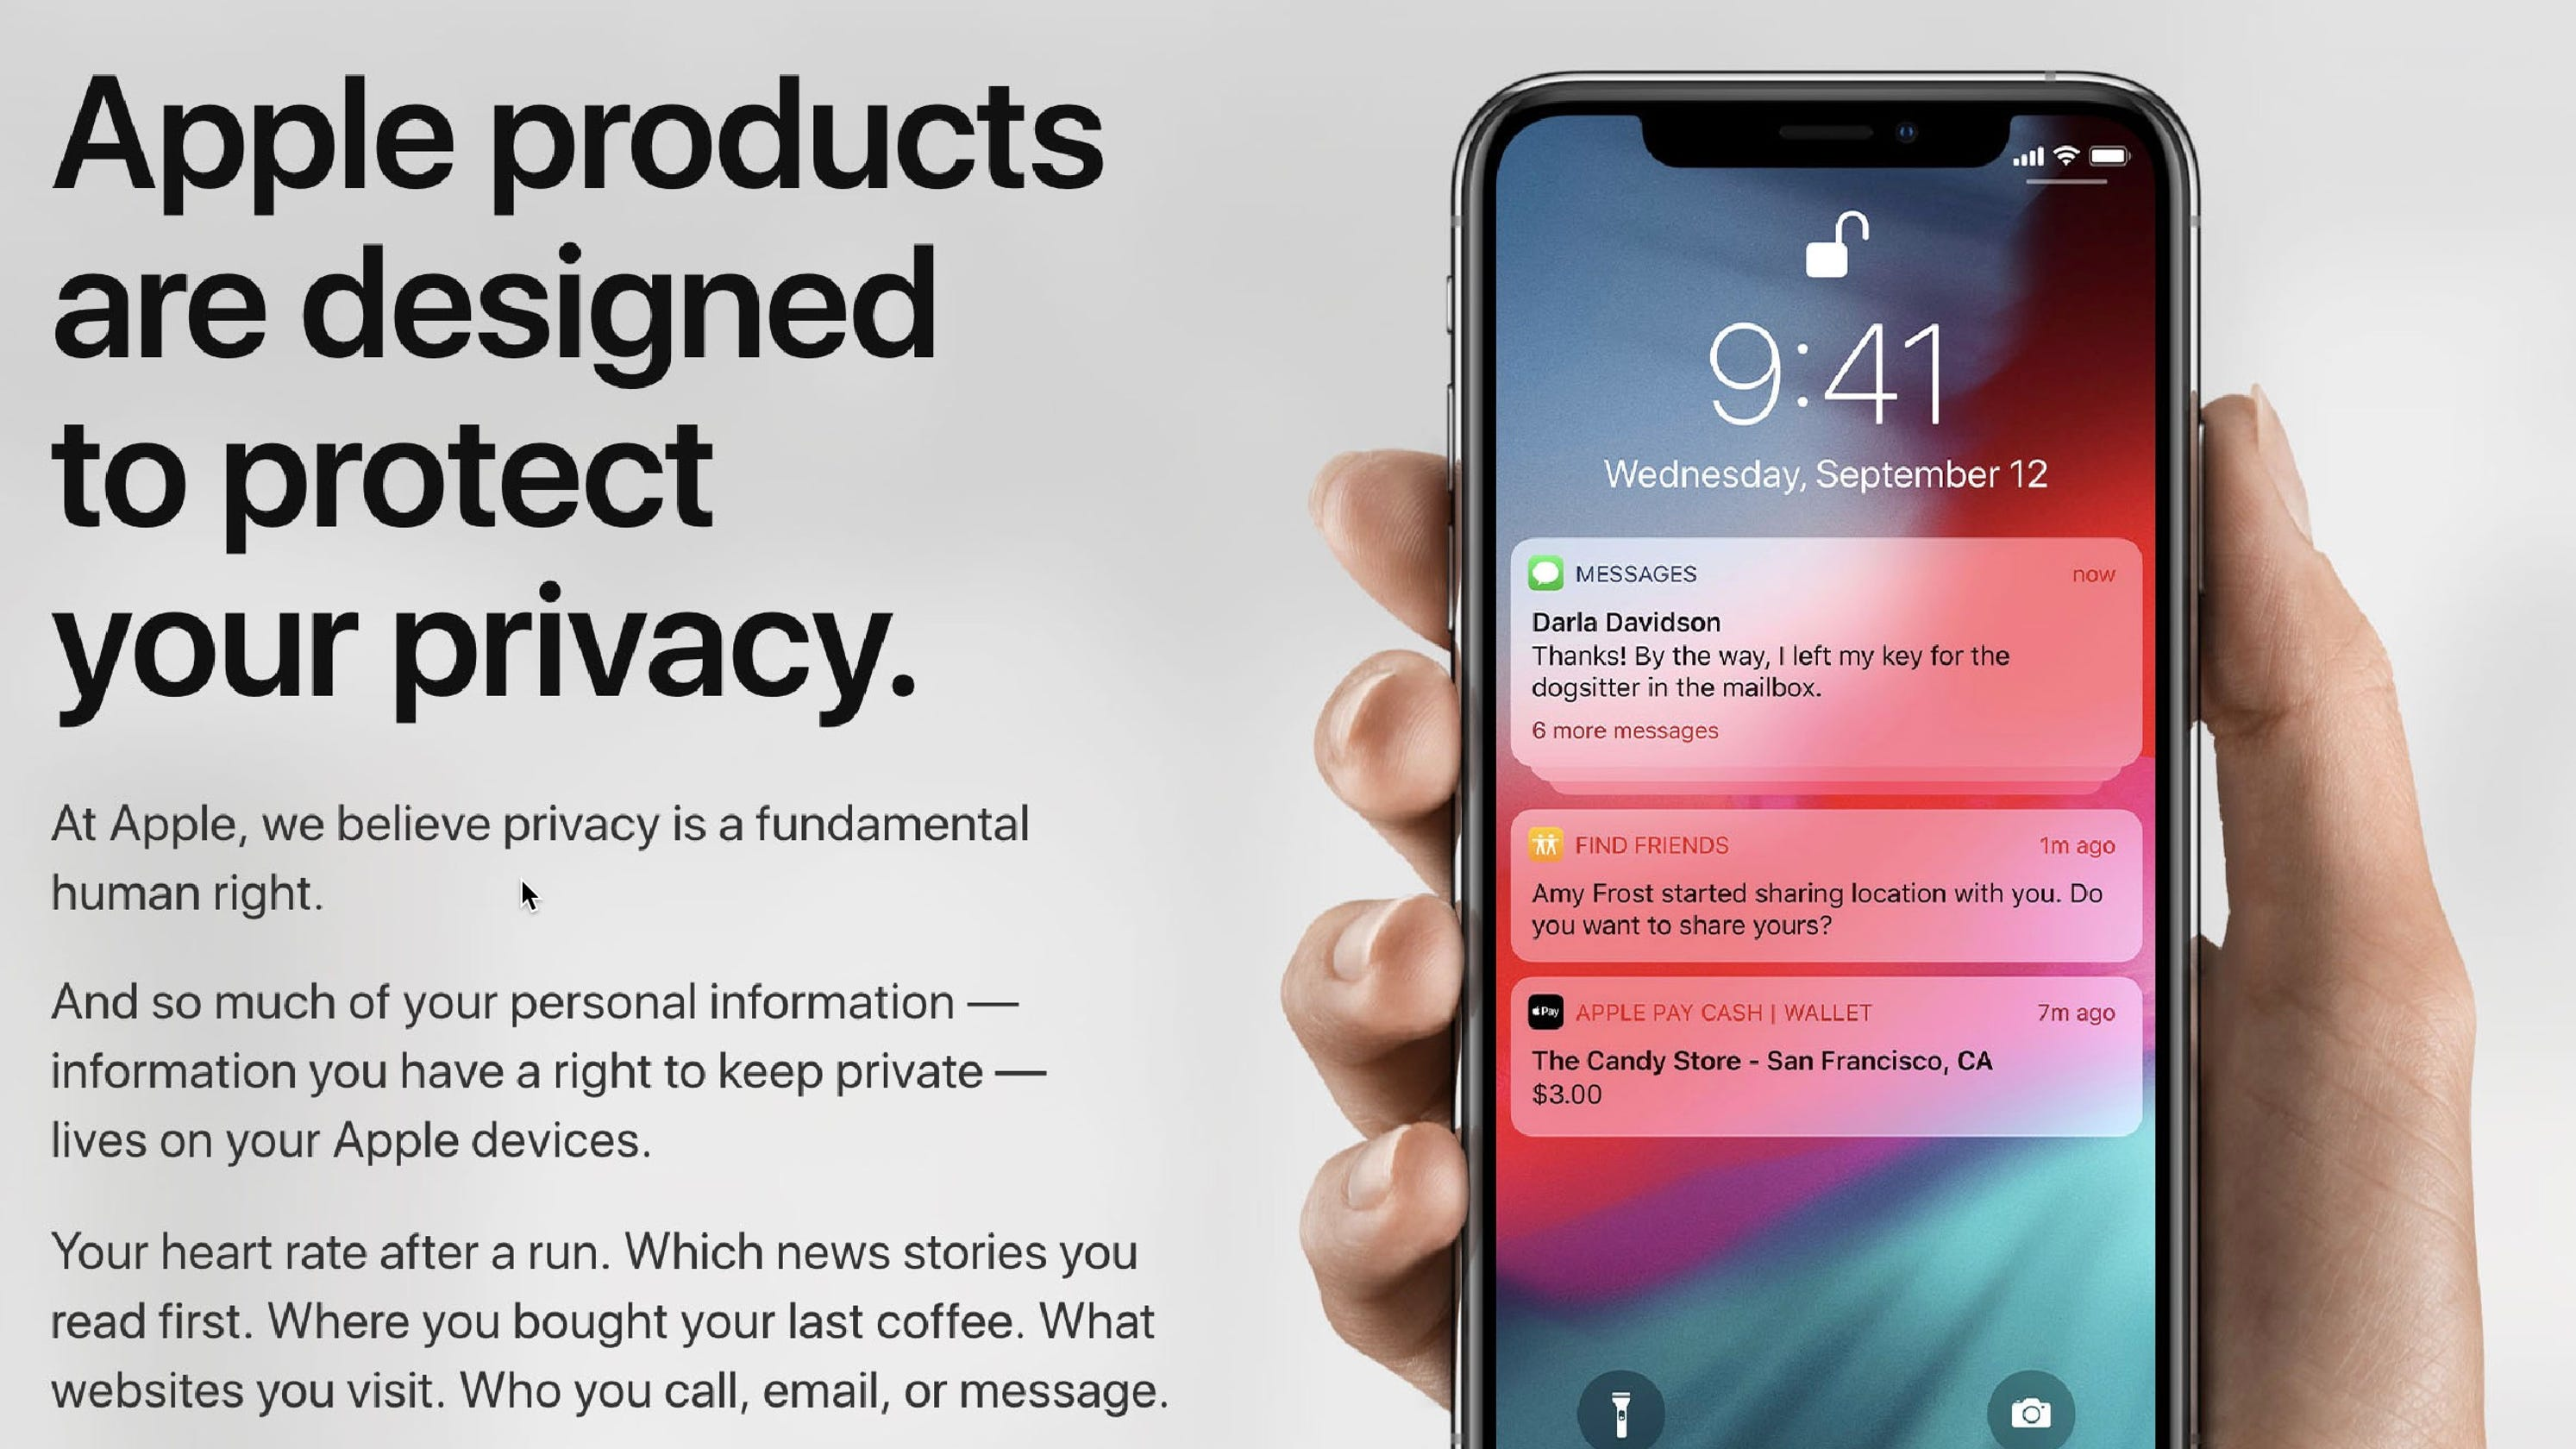 You can finally download your personal data from Apple without asking